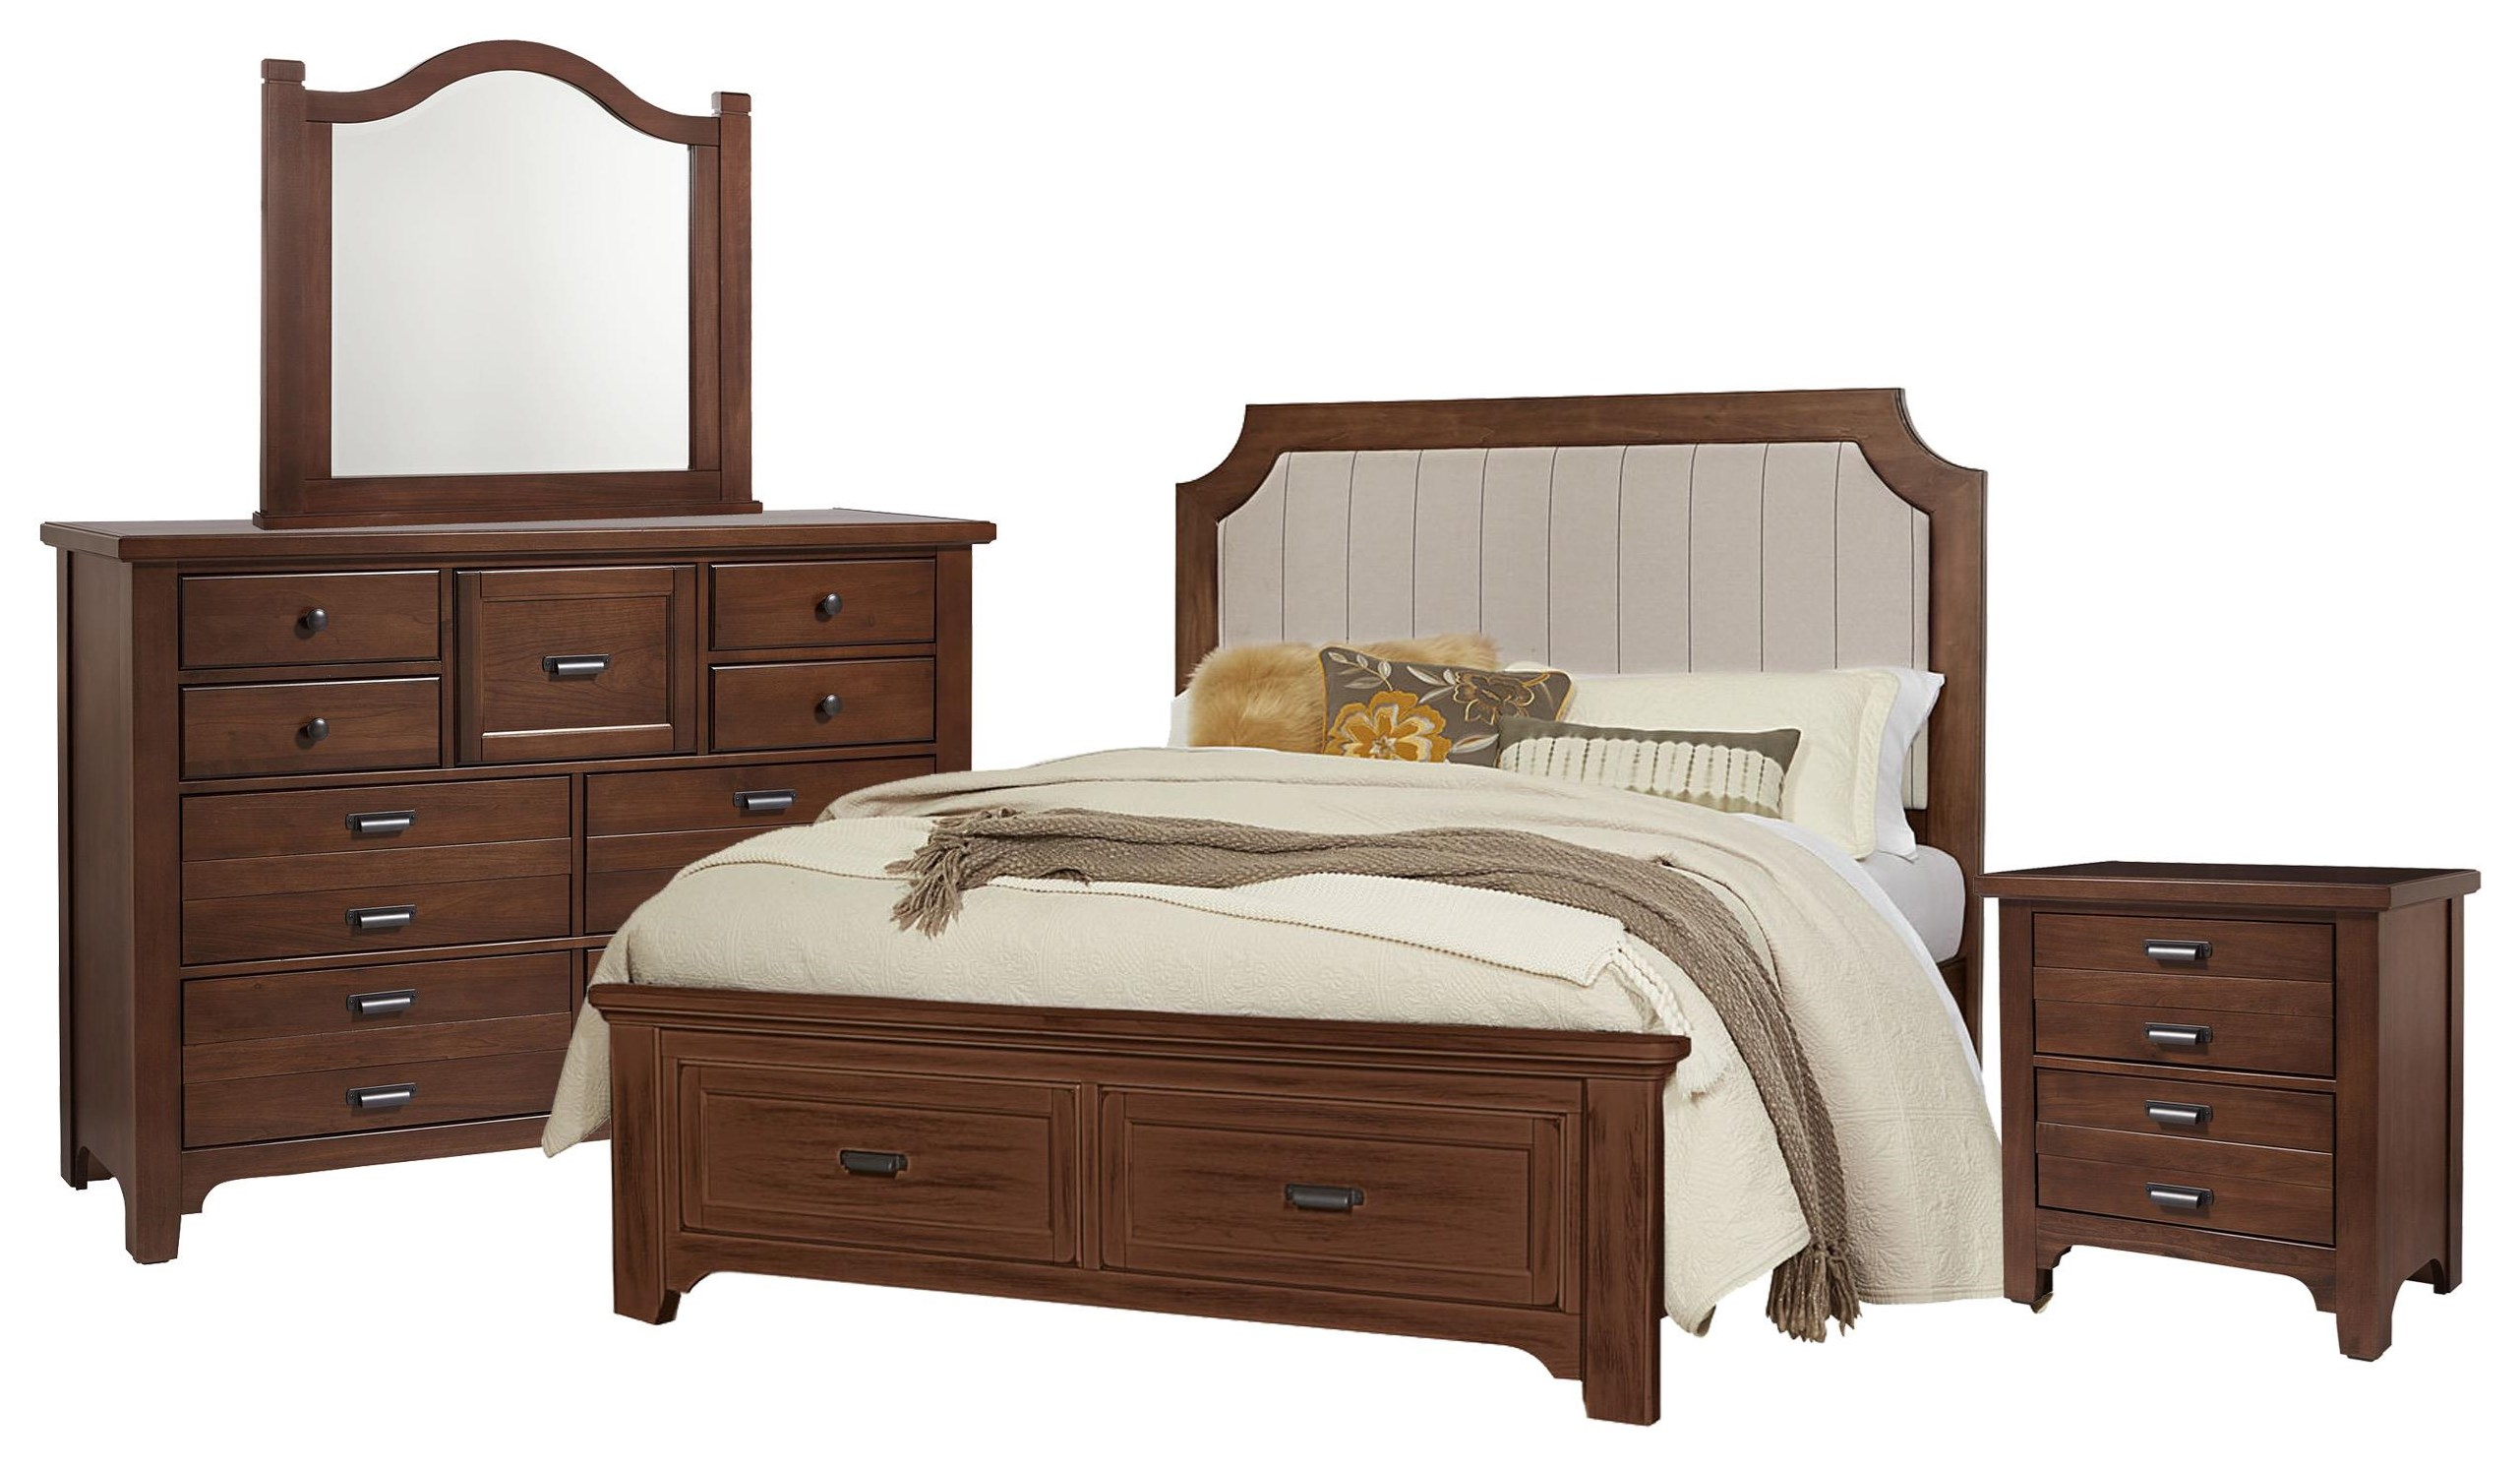 Bungalo Home Queen Bed, Dresser, Mirr by Vaughan Bassett at Johnny Janosik